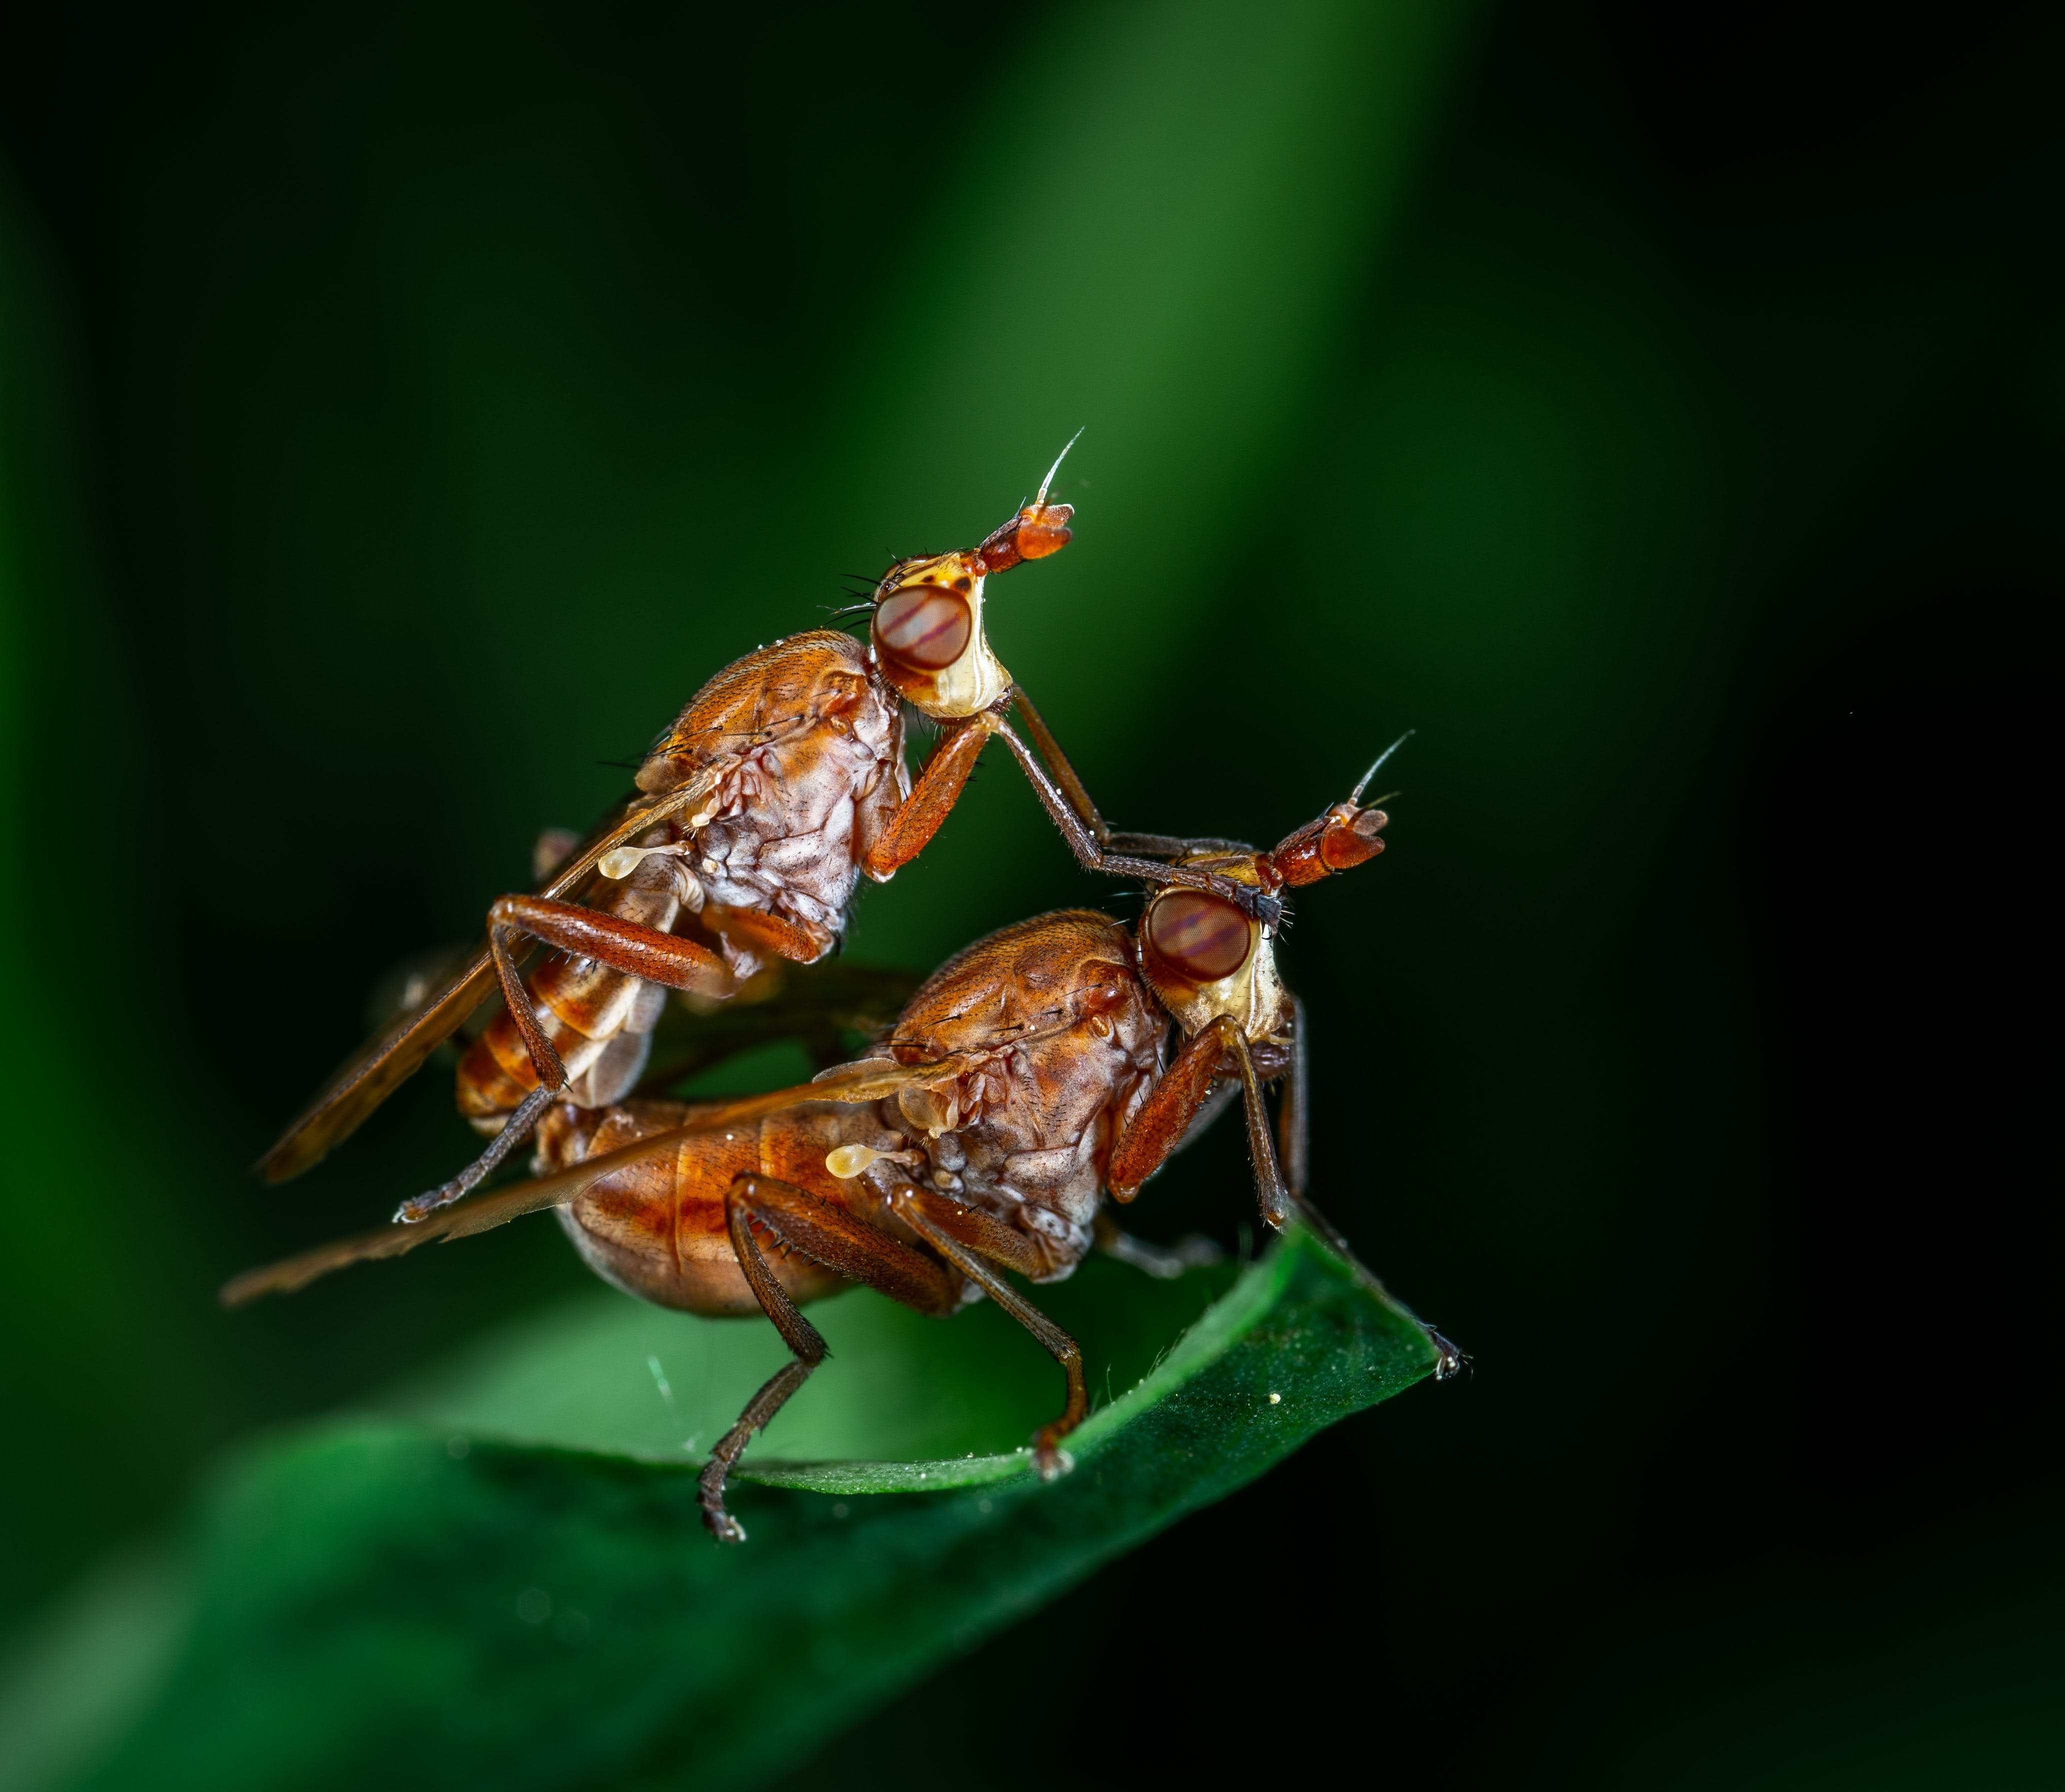 Macro Photography of Two Fly on Leaf